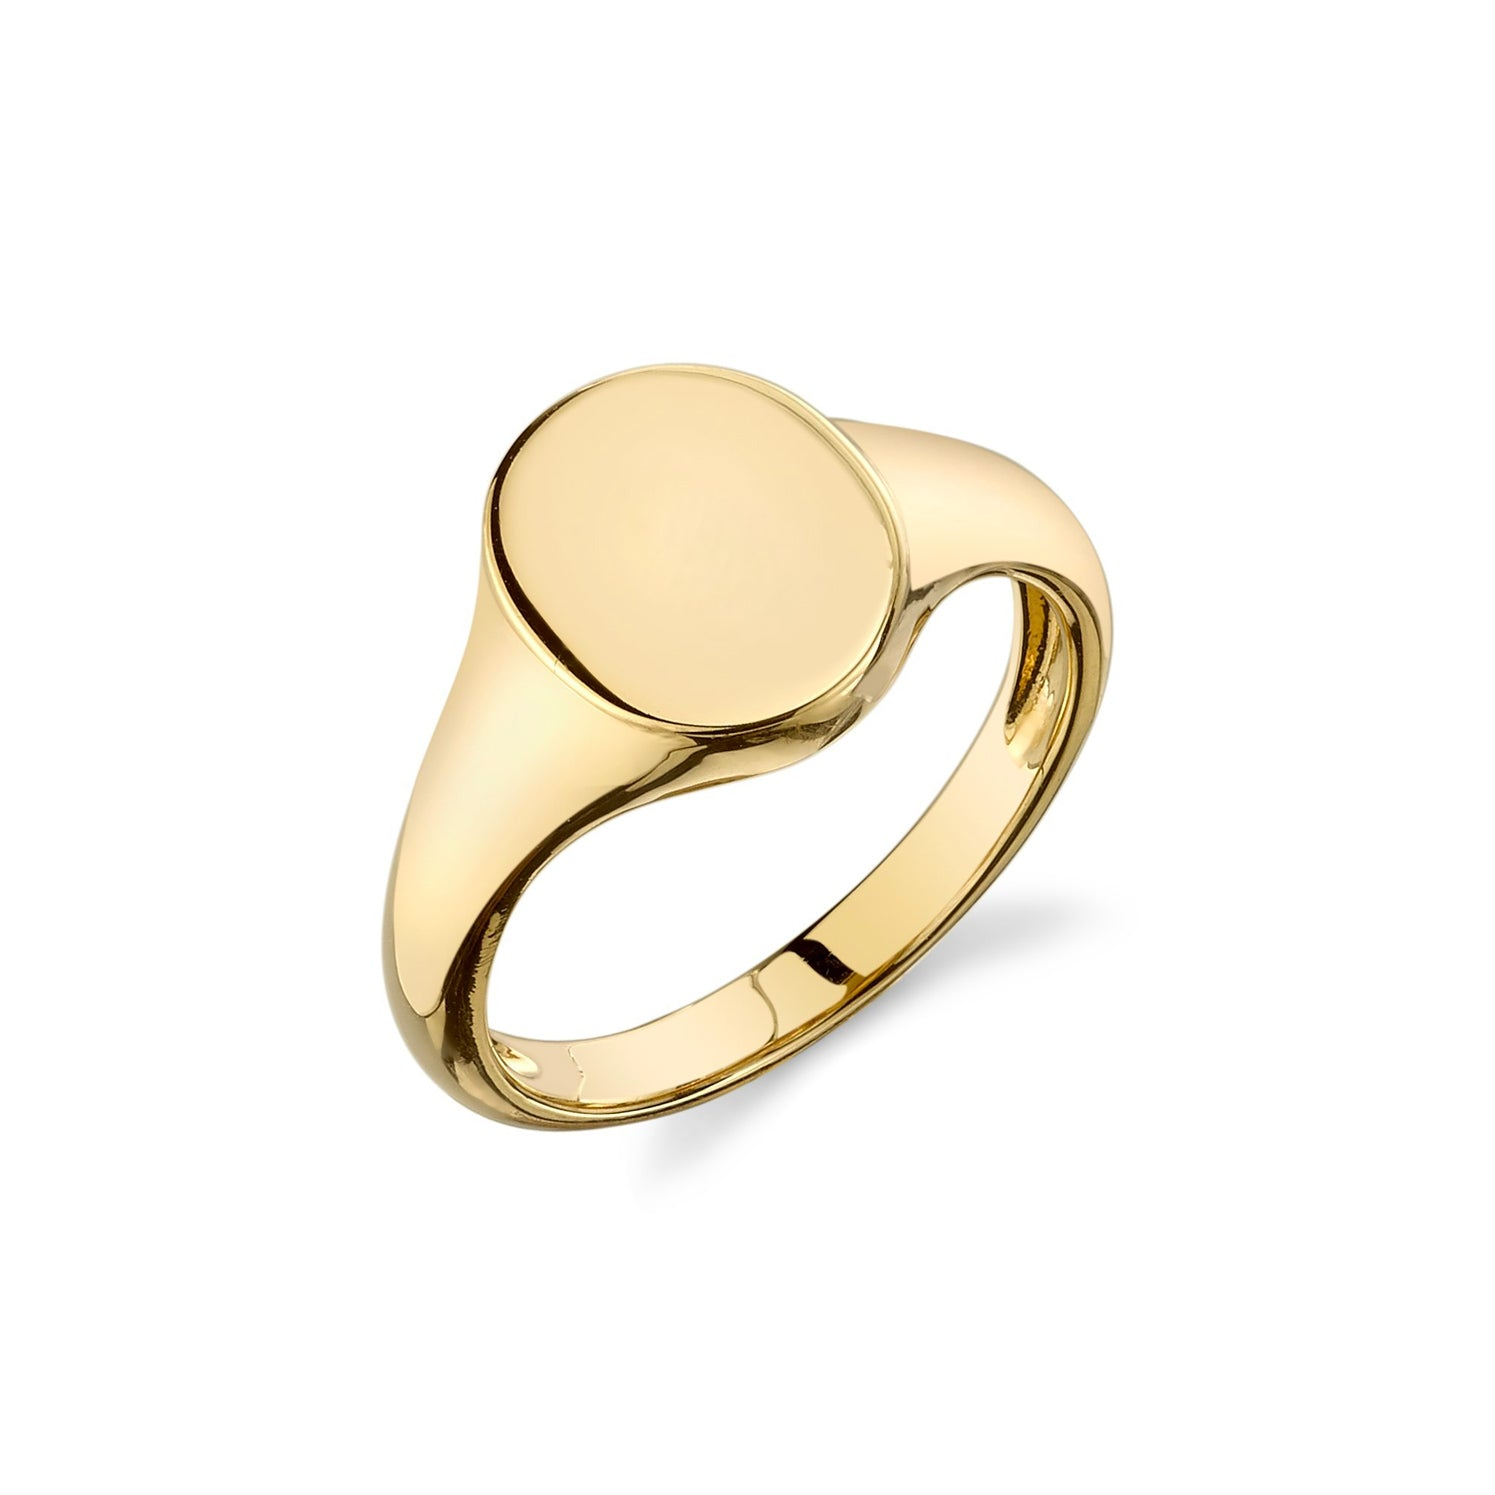 Disc Signet Ring - Gabriela Artigas